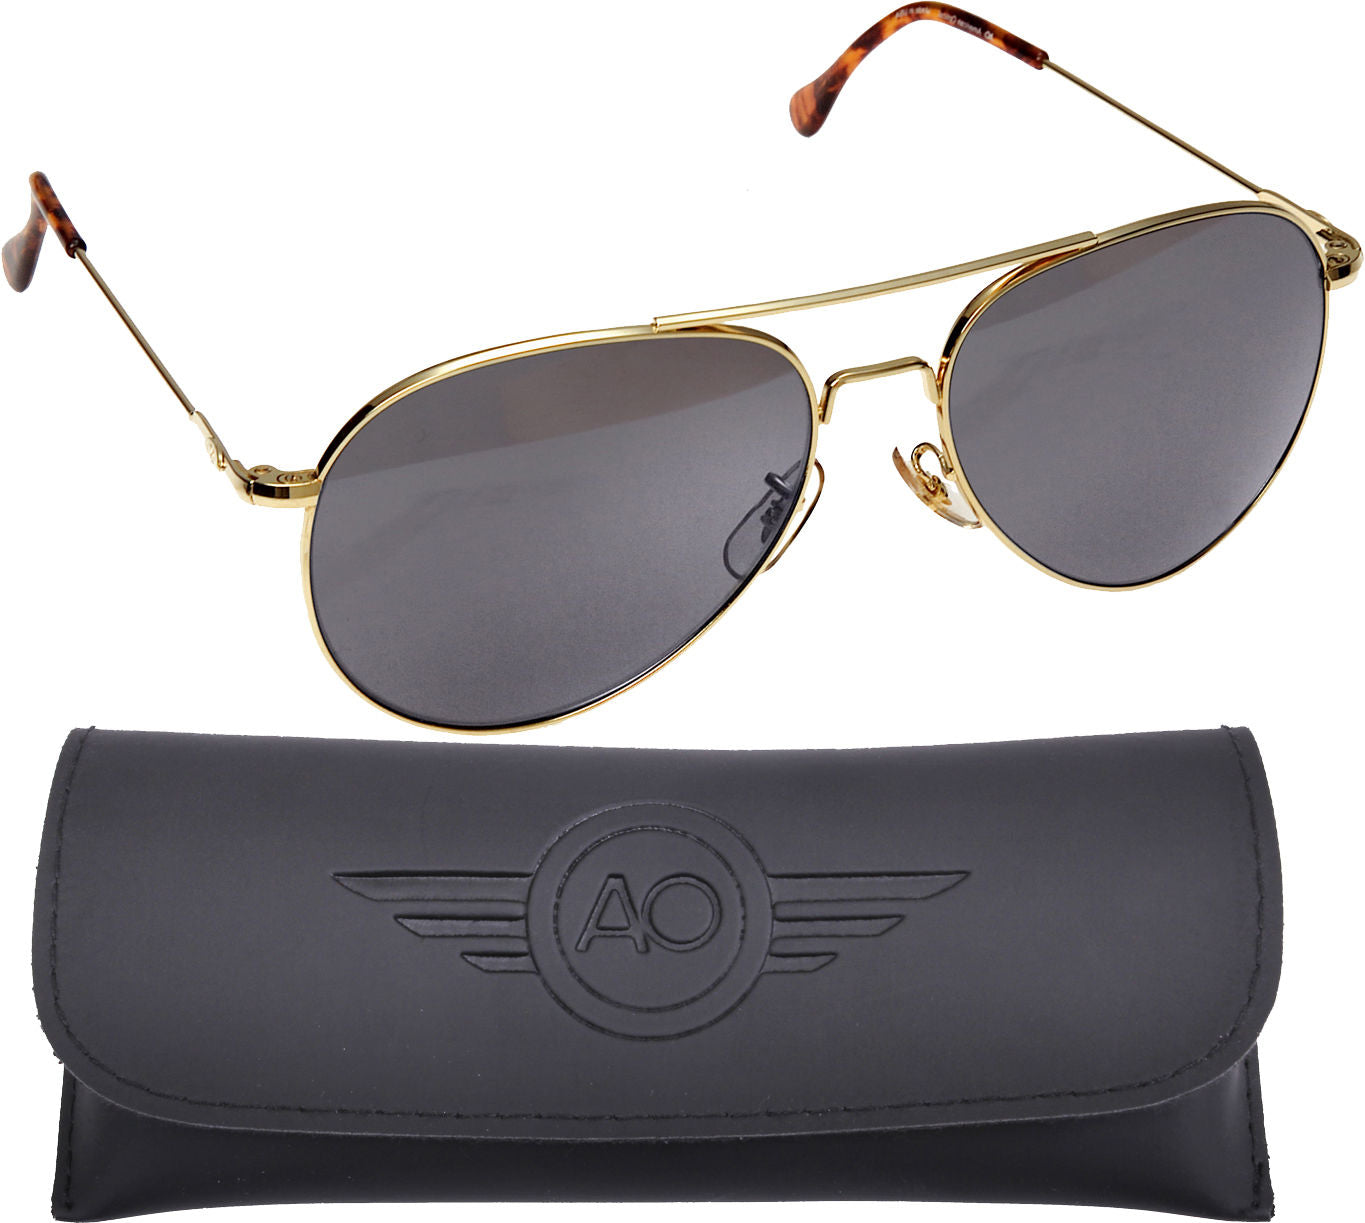 AO Eyewear Gold Aviators 58mm Grey Lenses, Milspec Air Force Pilot Sunglasses